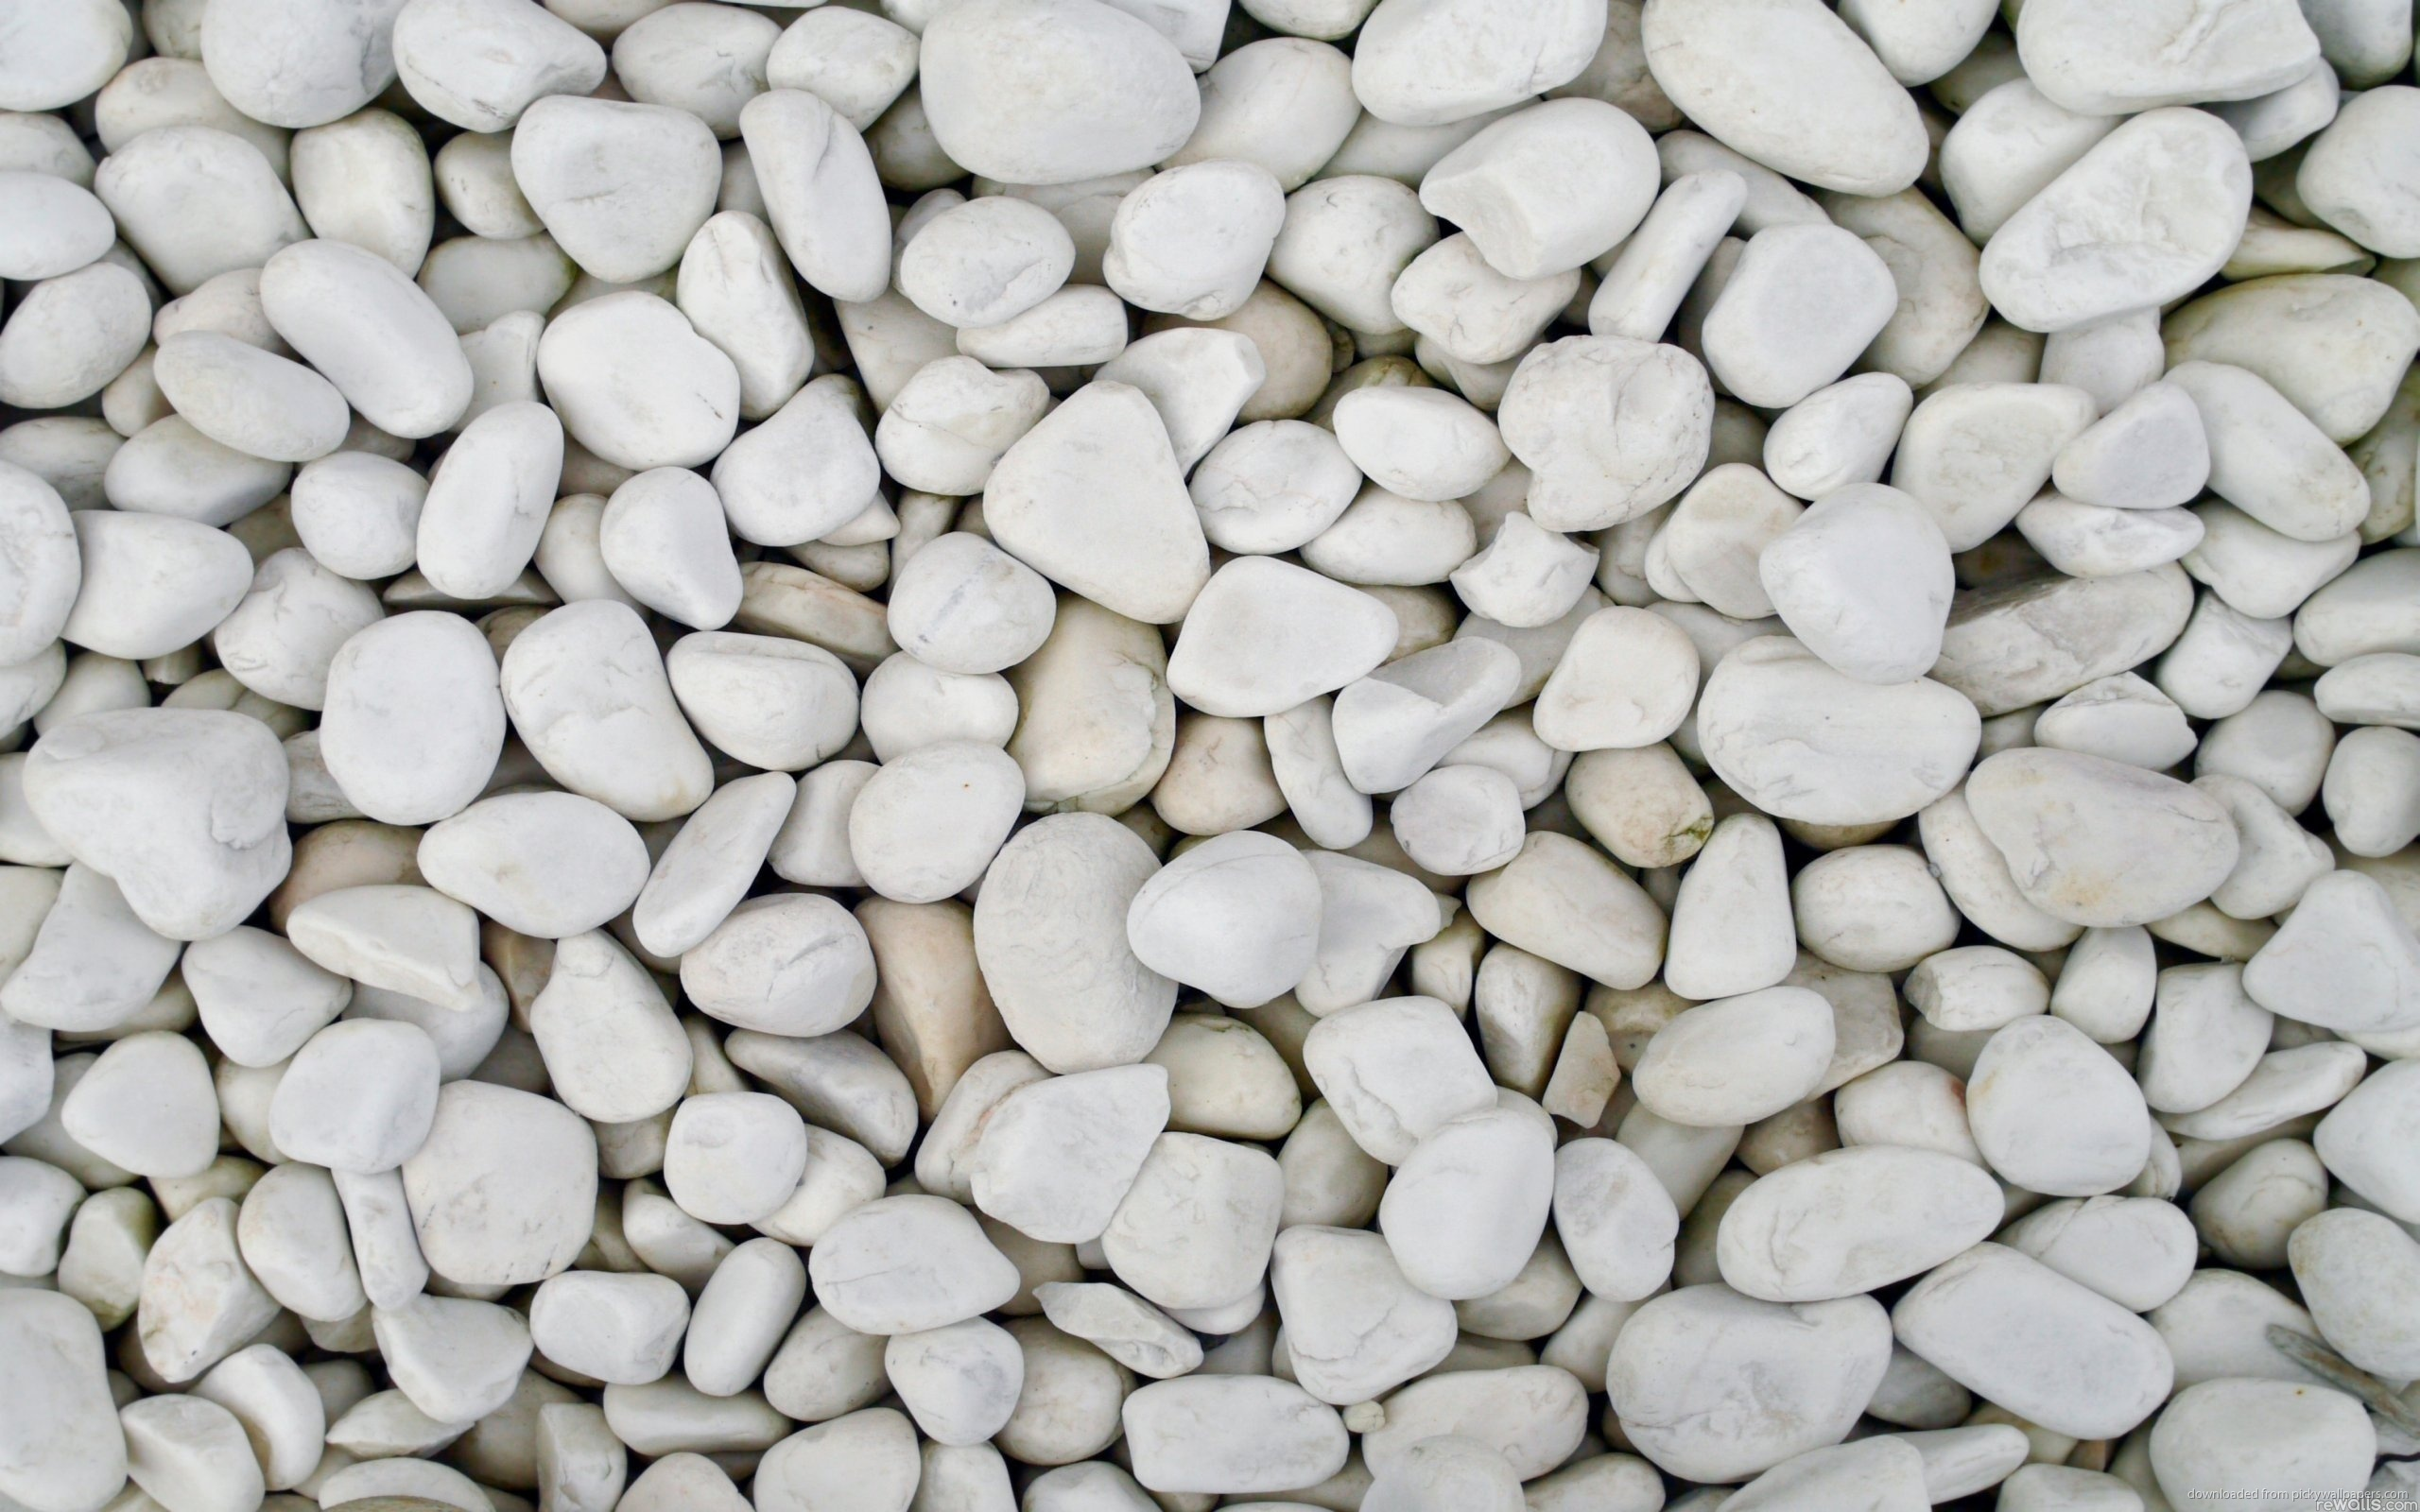 ... White Pebbles for 2560x1600